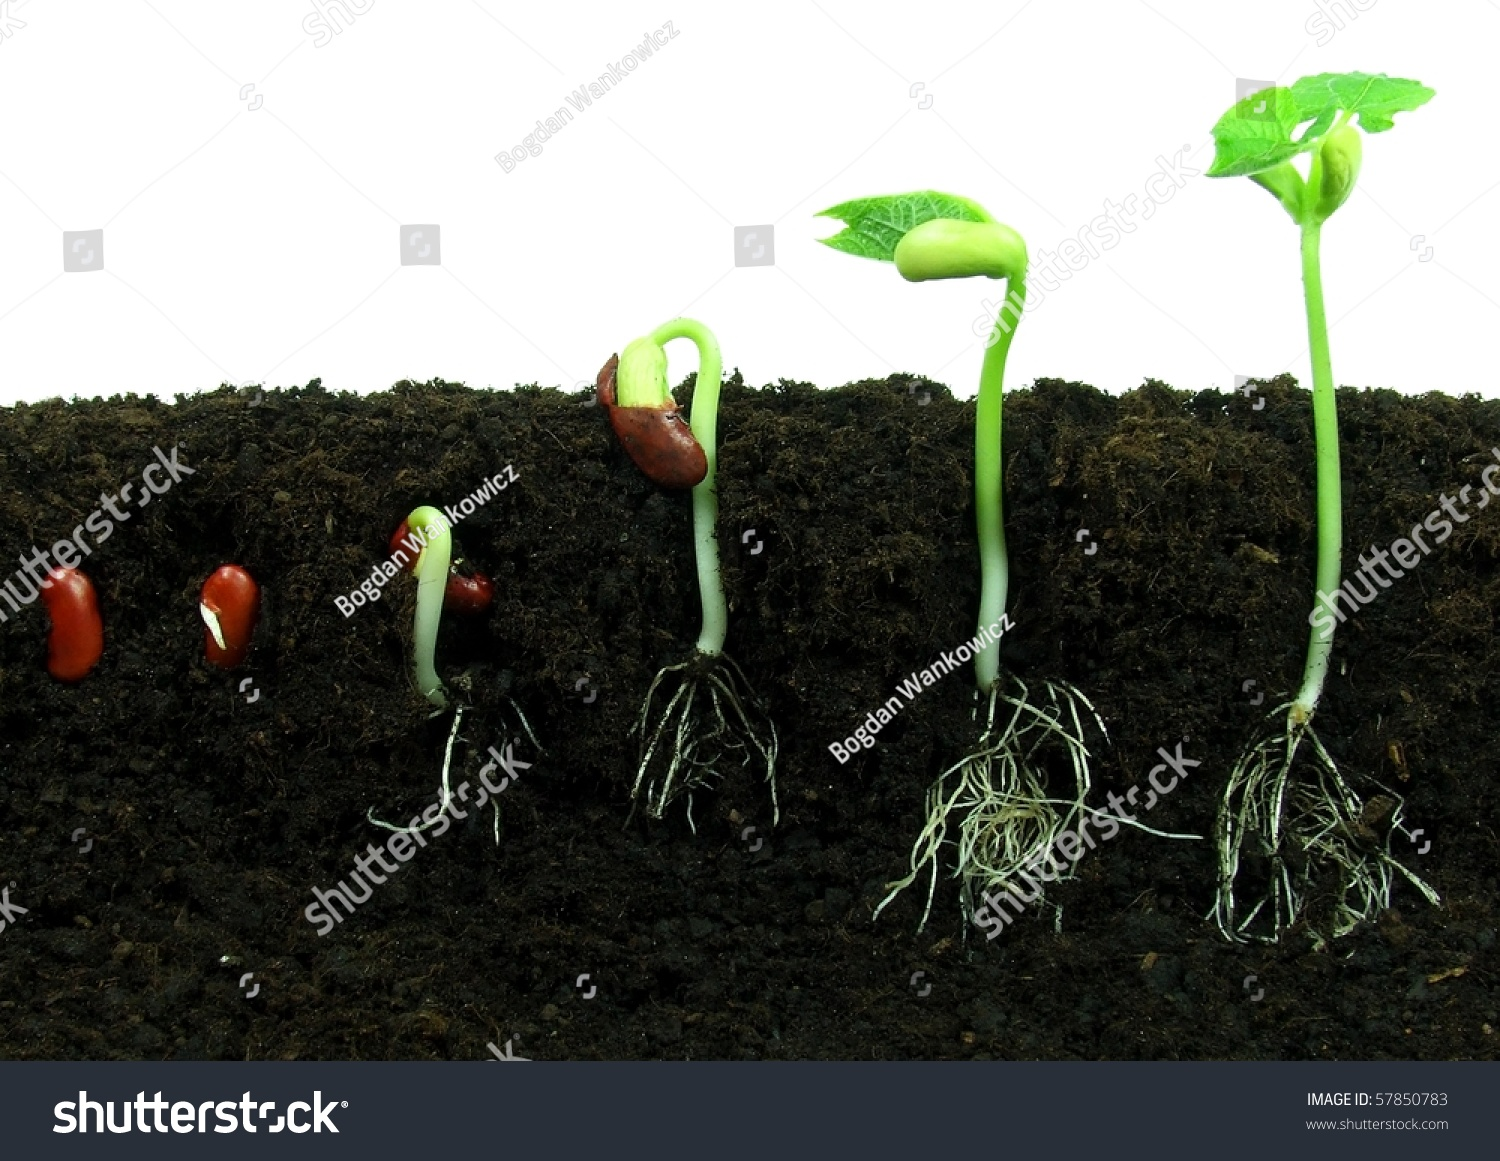 Sequence Of Bean Seeds Germination In Soil Stock Photo Shutterstock